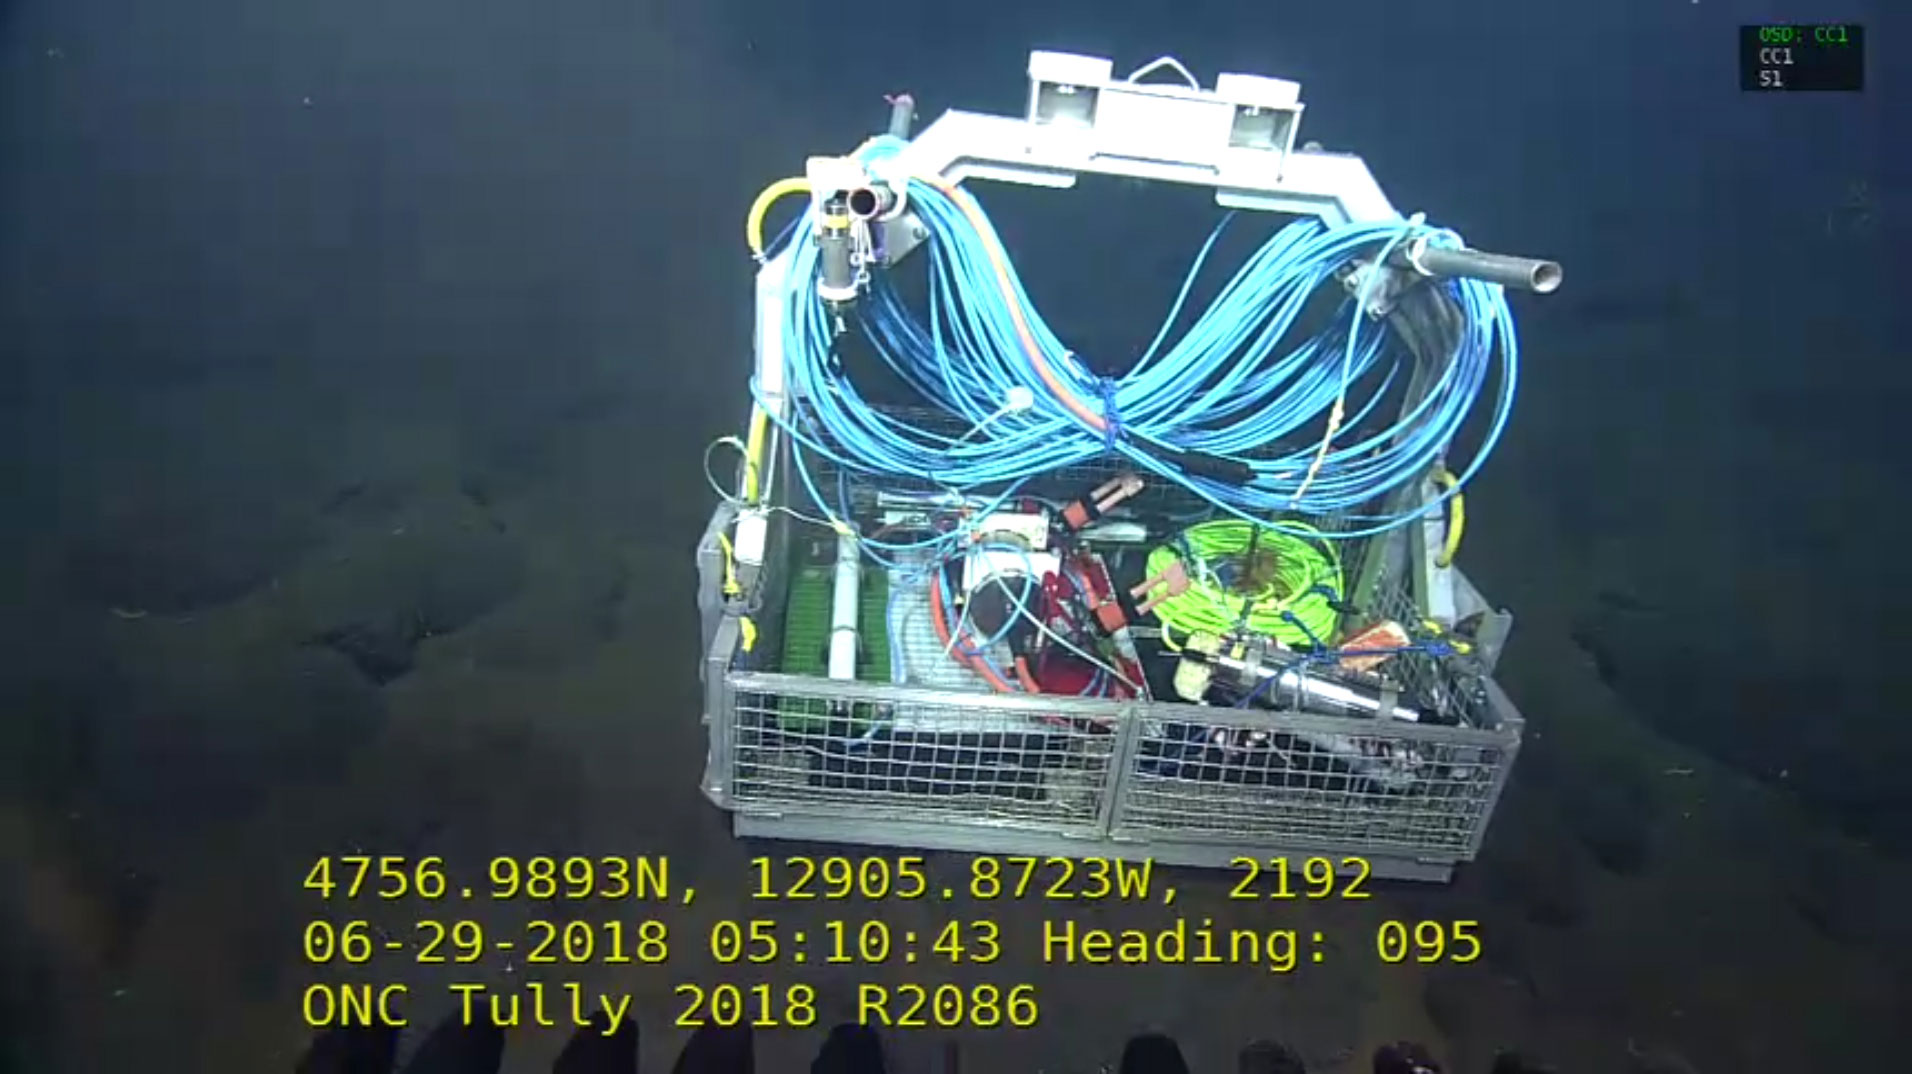 Remotely operated vehicle toolbox containing Maris Ocean Bottom Seismometer, interface unit and cabling